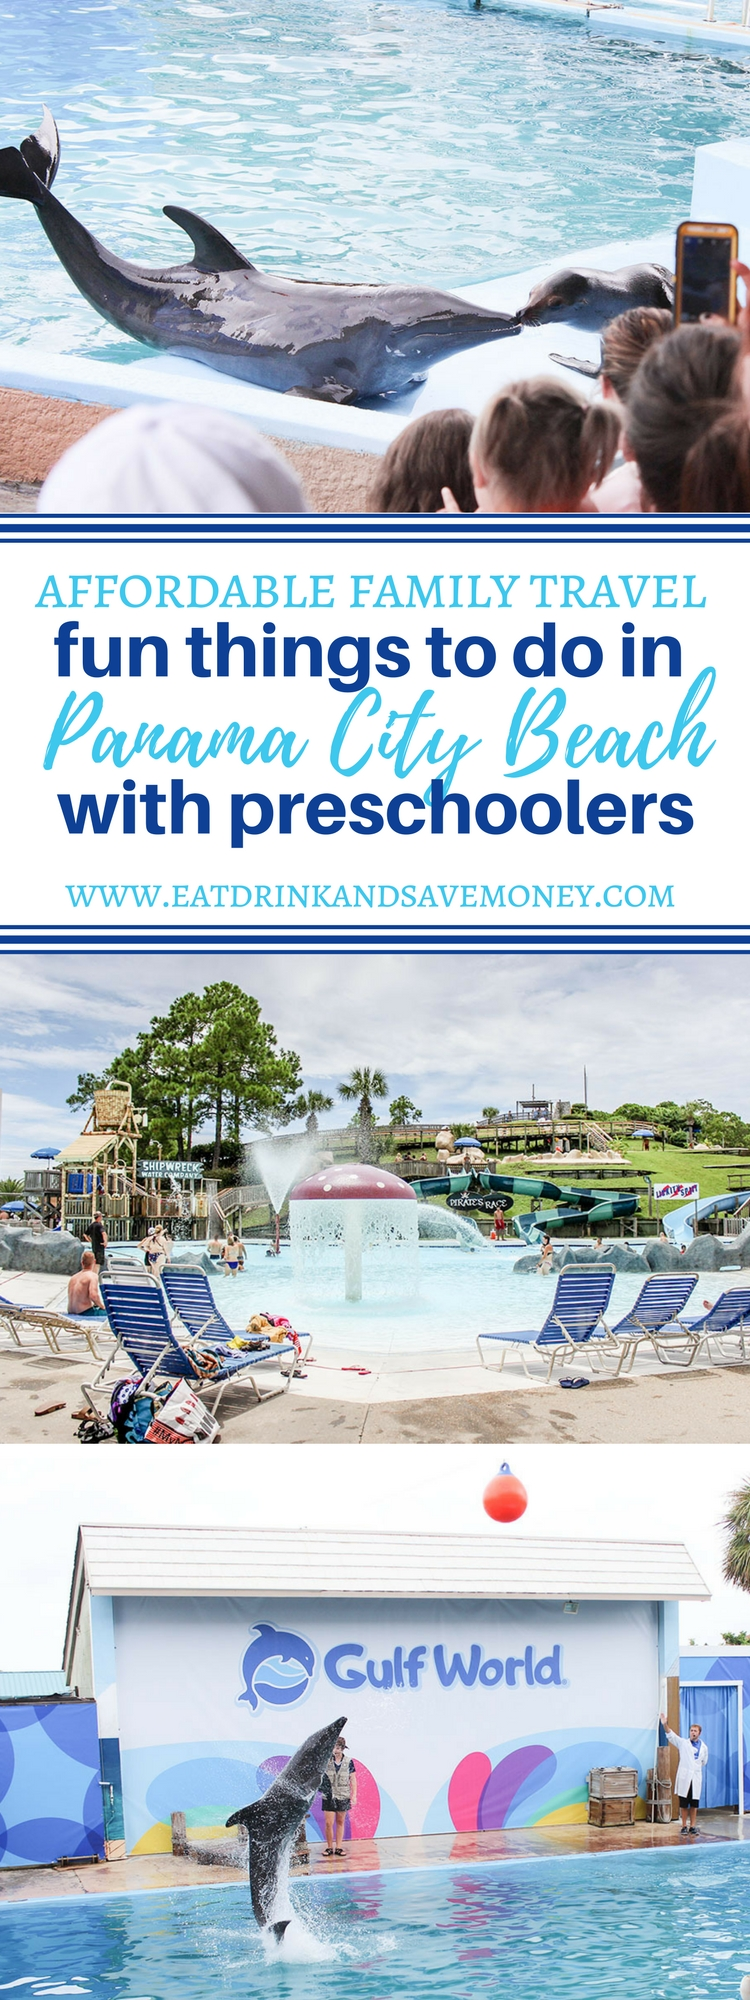 Fun things to do in Panama City Beach with preschoolers. Plan your Panama City Beach vacation for the next time you visit Florida. Florida beach vacations are the best!